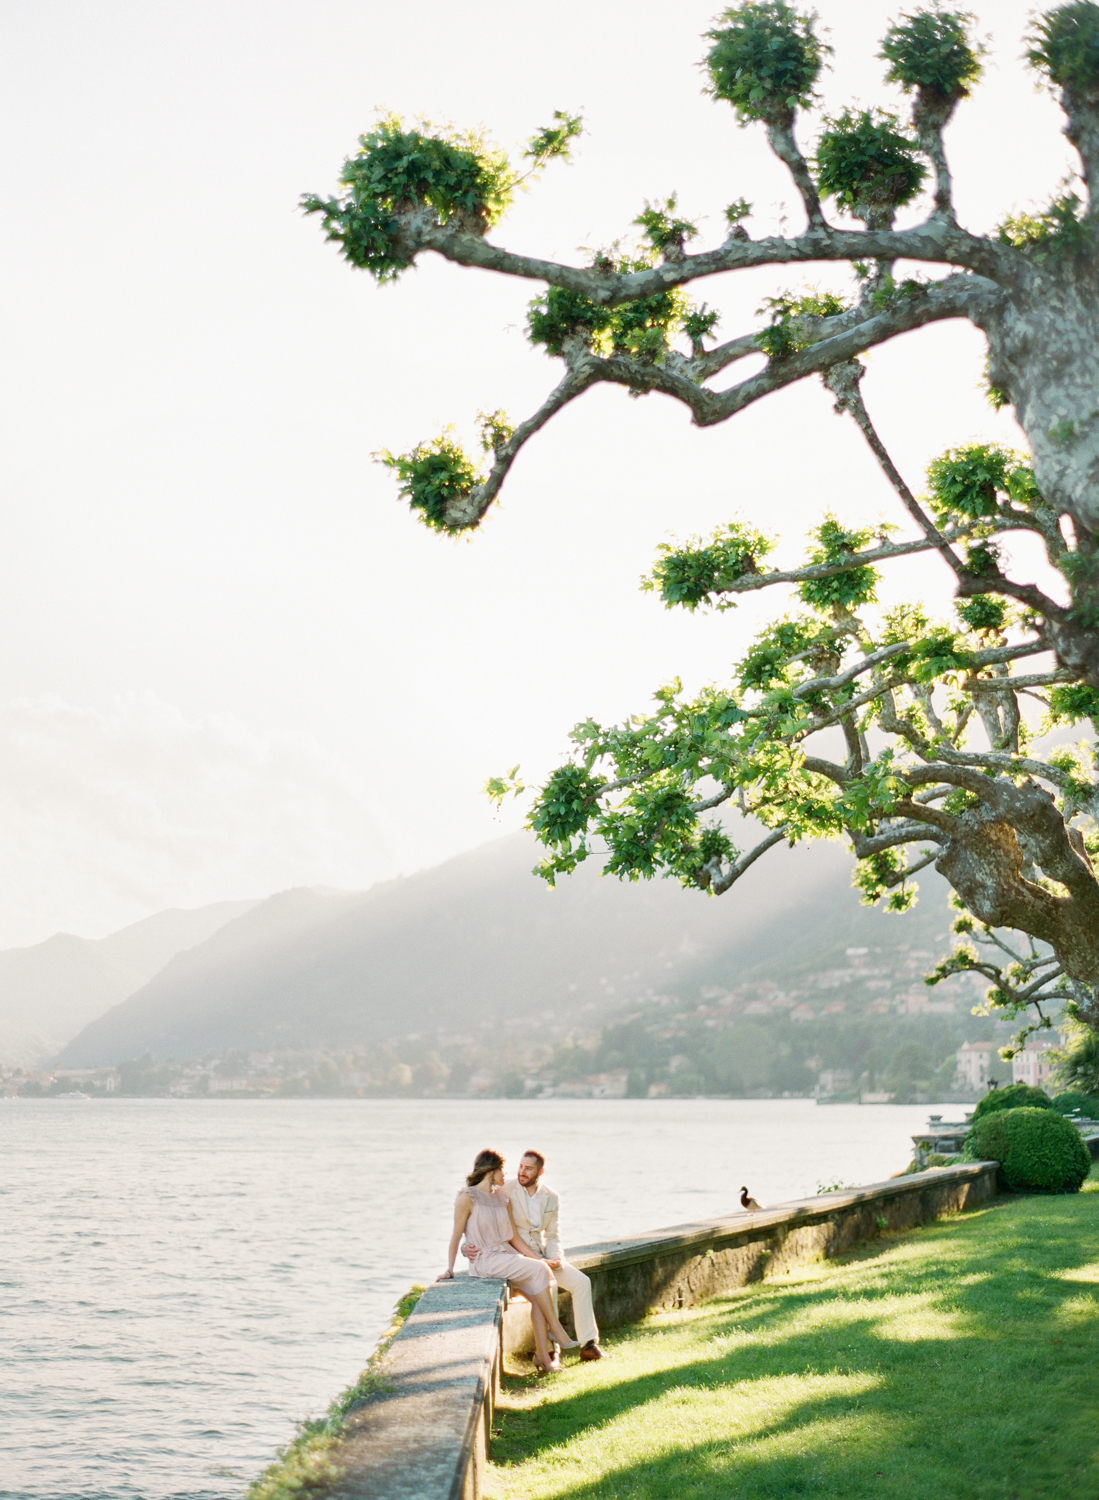 Lake_Como_wedding_photographer_nikol_bodnarova_lake_como_film_wedding_photographer_40.JPG